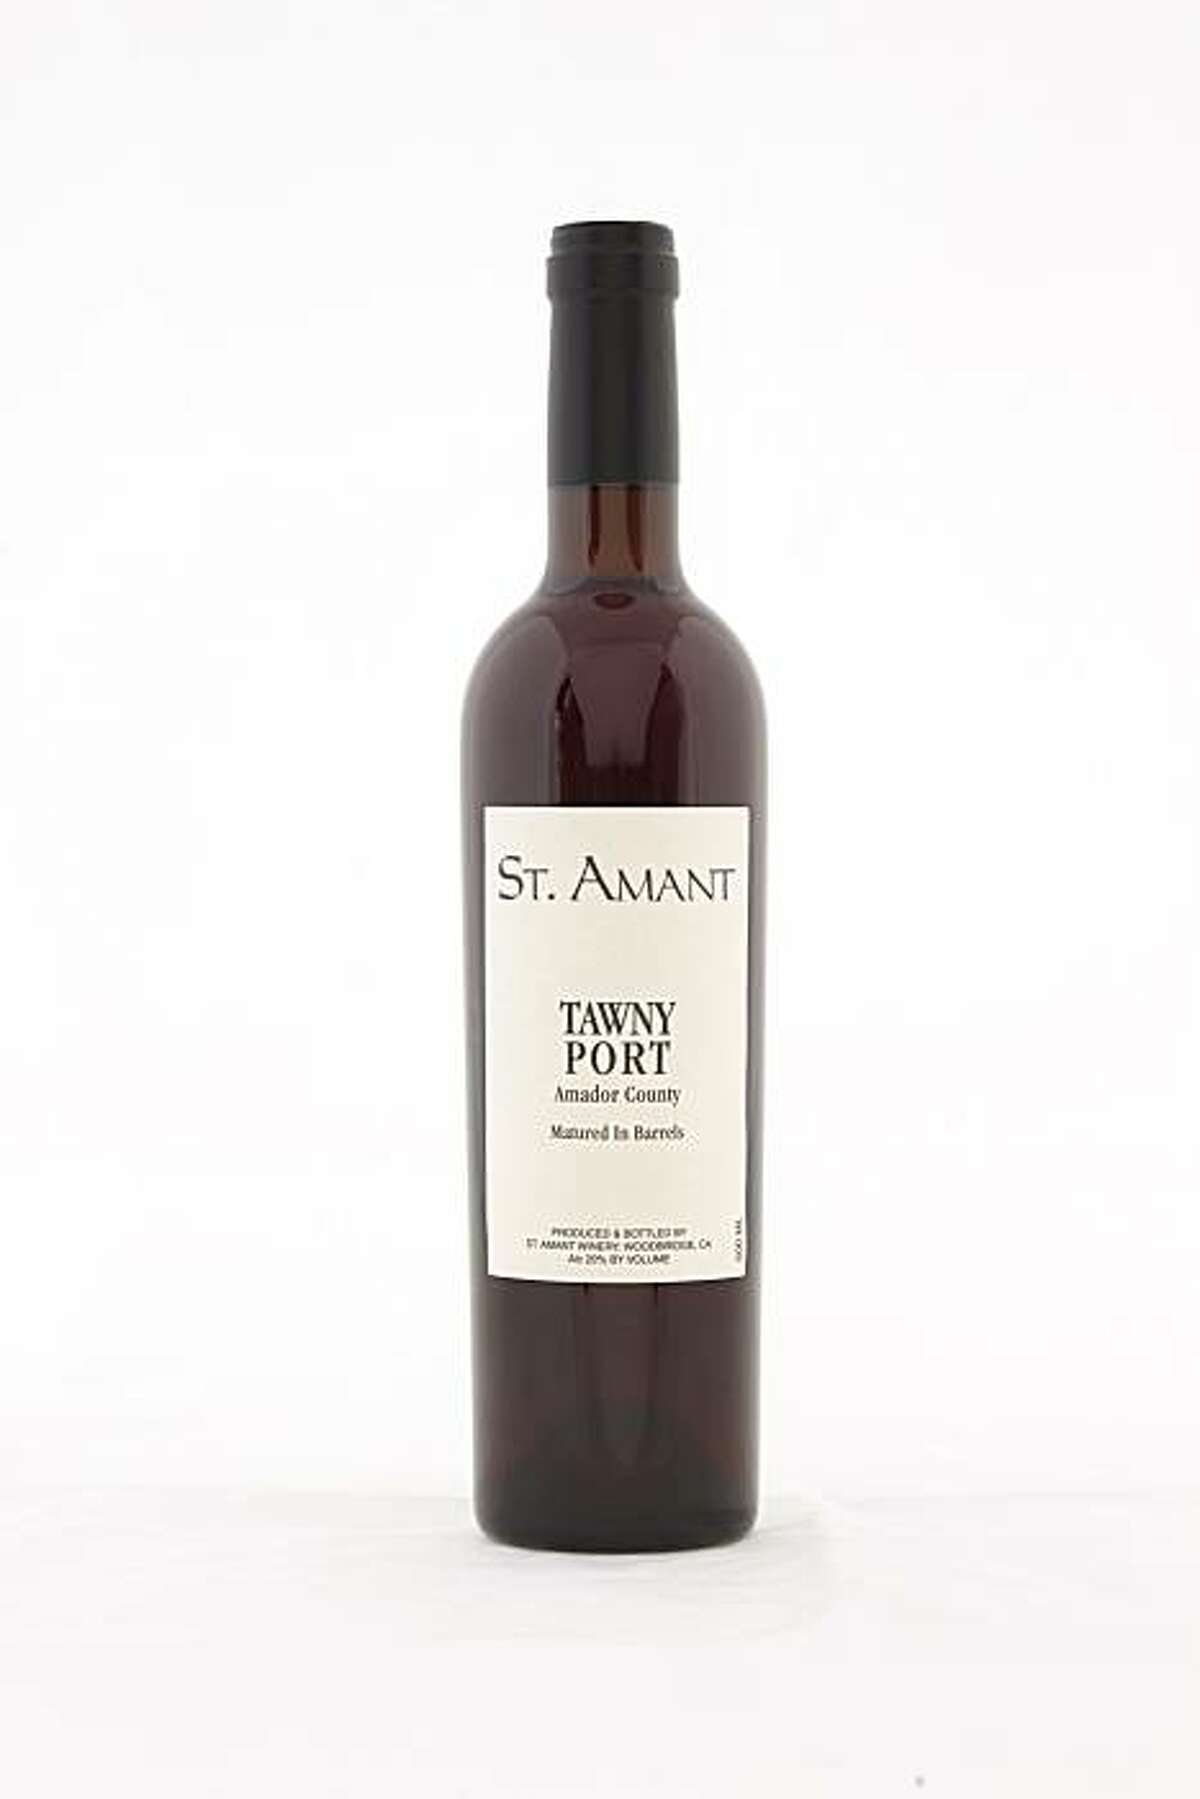 St. Amant Tawny Port Amador County as seen in San Francisco, California, on January 19, 2011.